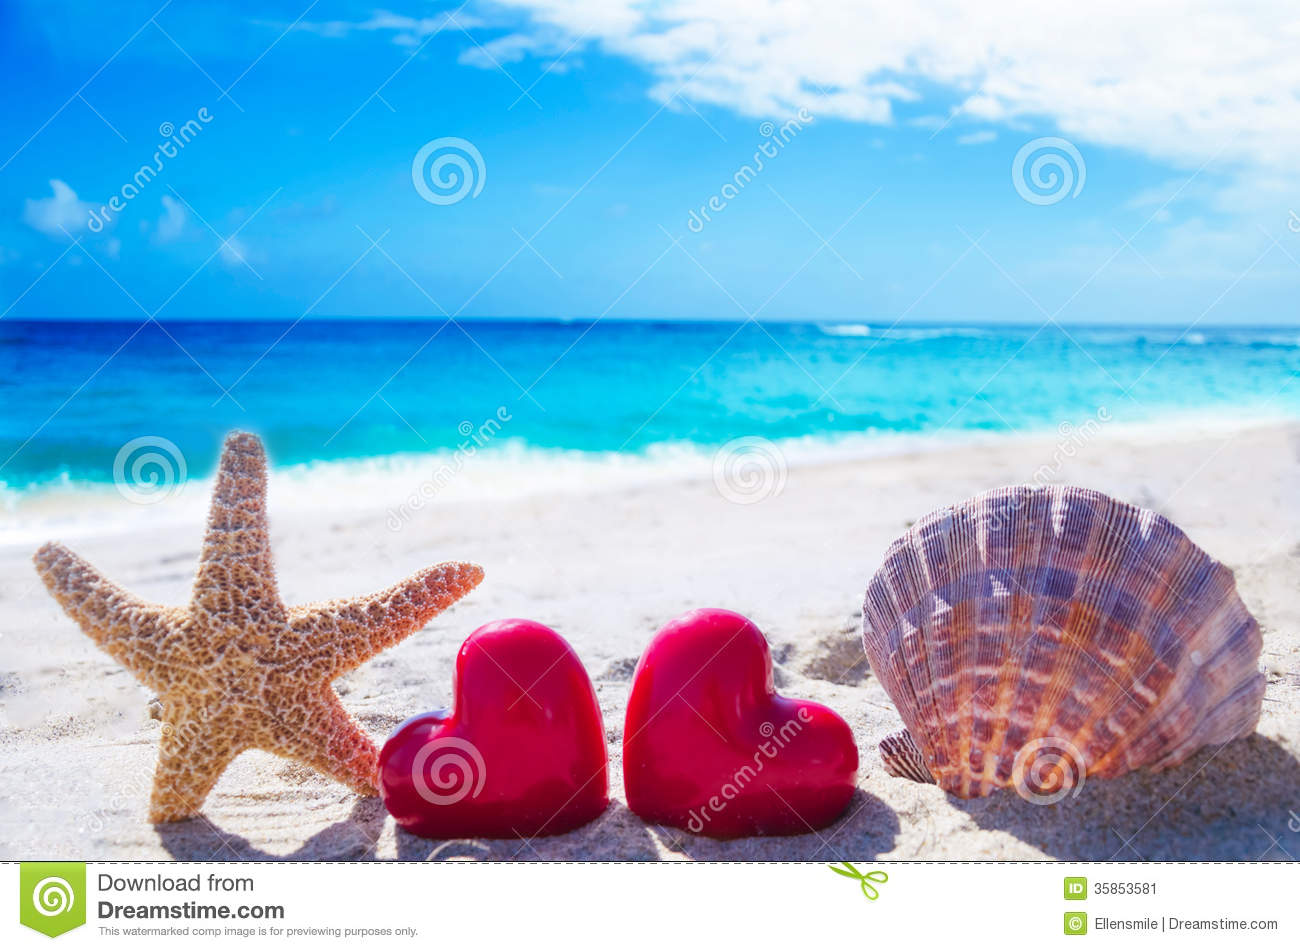 Starfish And Seashell With Hearts By The Ocean Stock Image